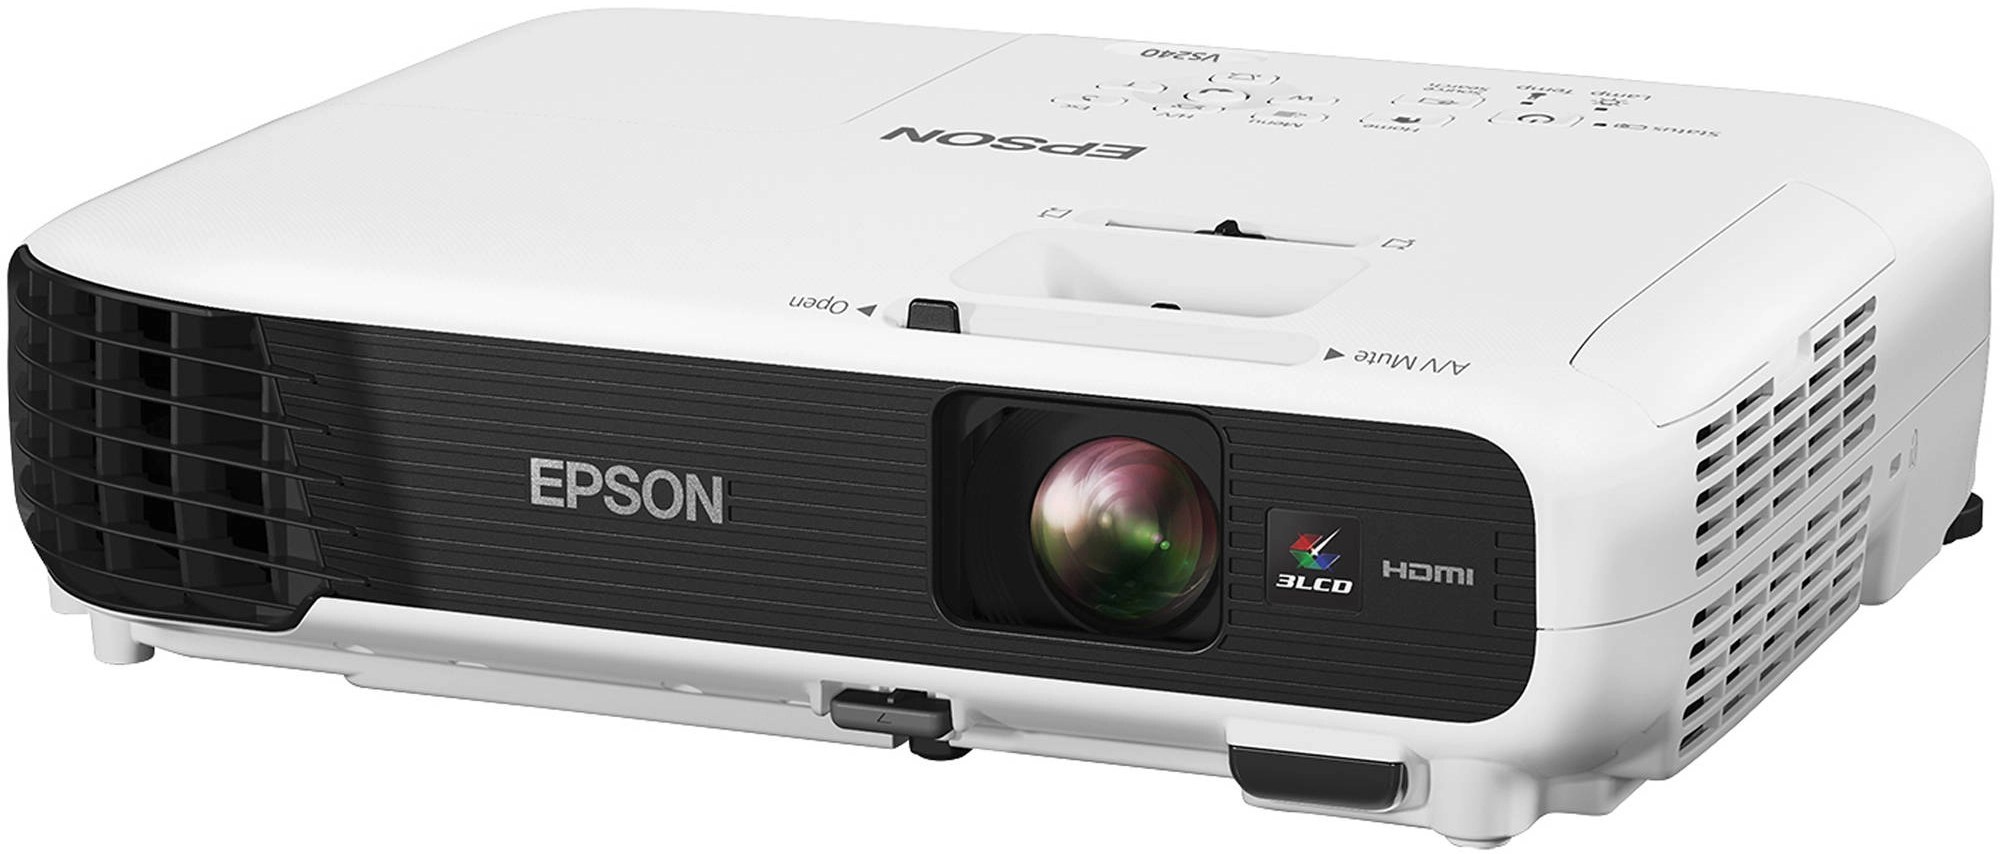 hight resolution of epson svga 3lcd business projector